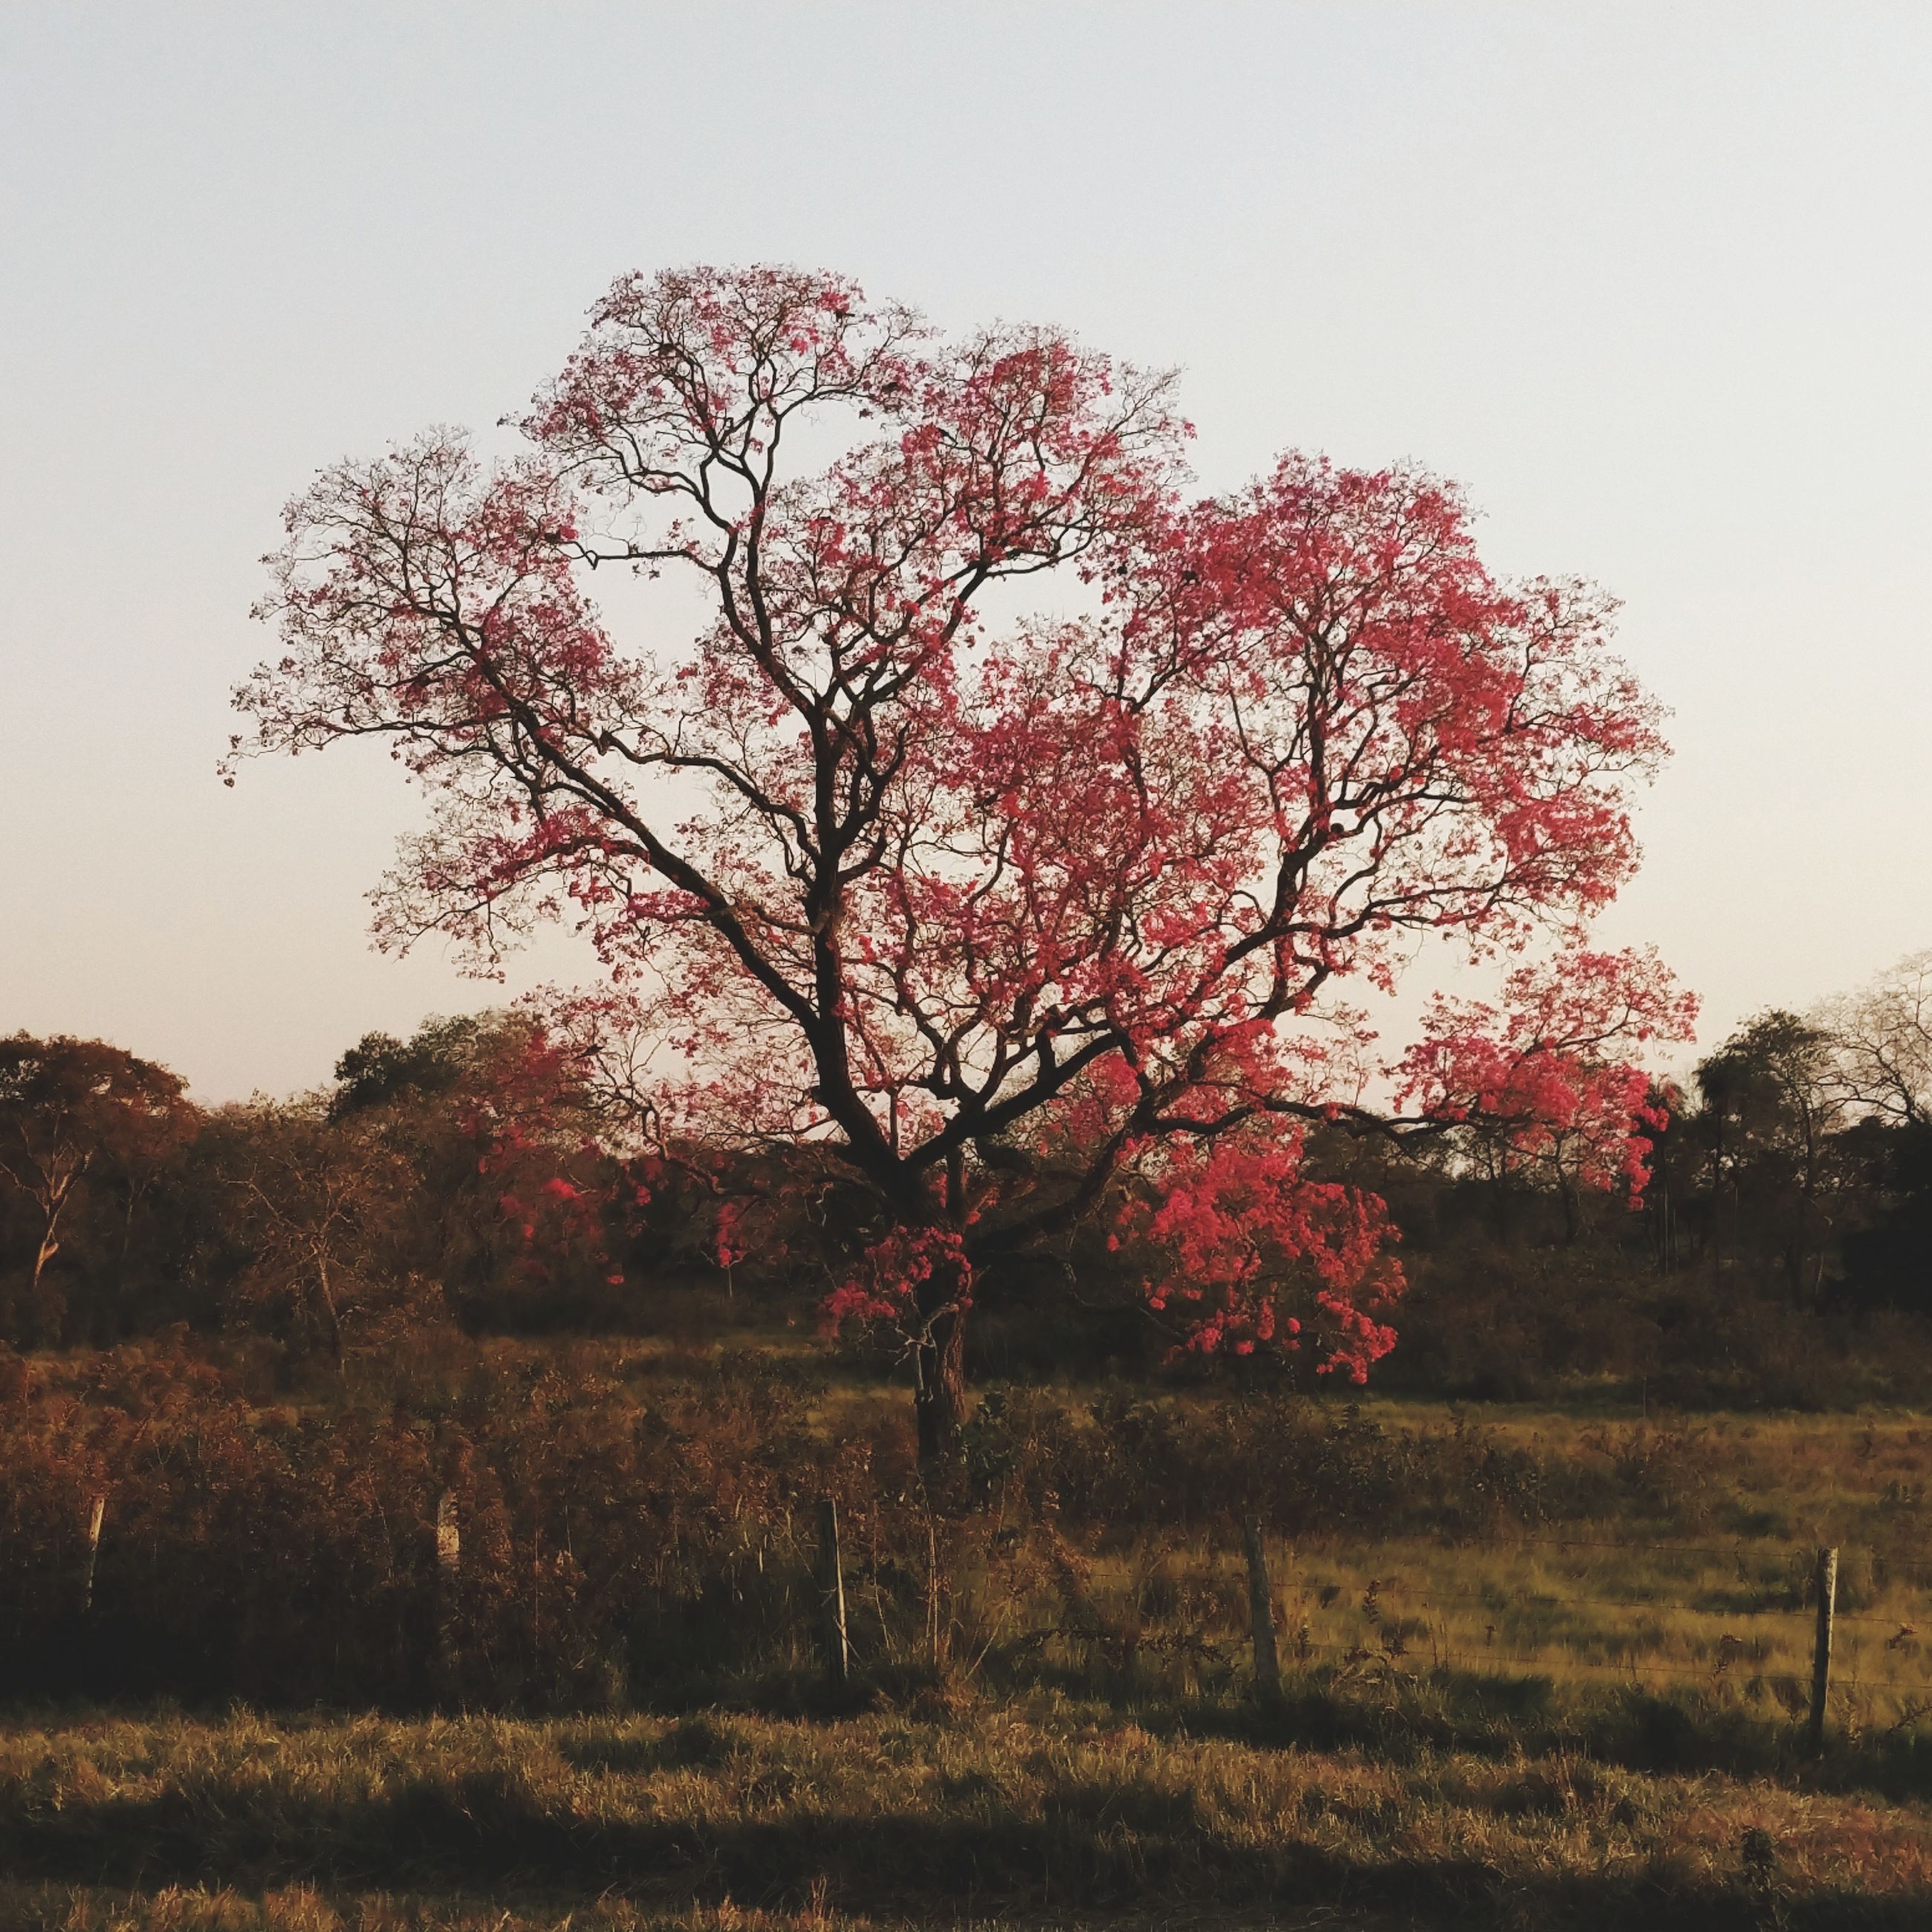 tree, plant, sky, tranquility, beauty in nature, nature, landscape, land, field, environment, growth, tranquil scene, day, scenics - nature, no people, clear sky, autumn, grass, non-urban scene, outdoors, change, cherry blossom